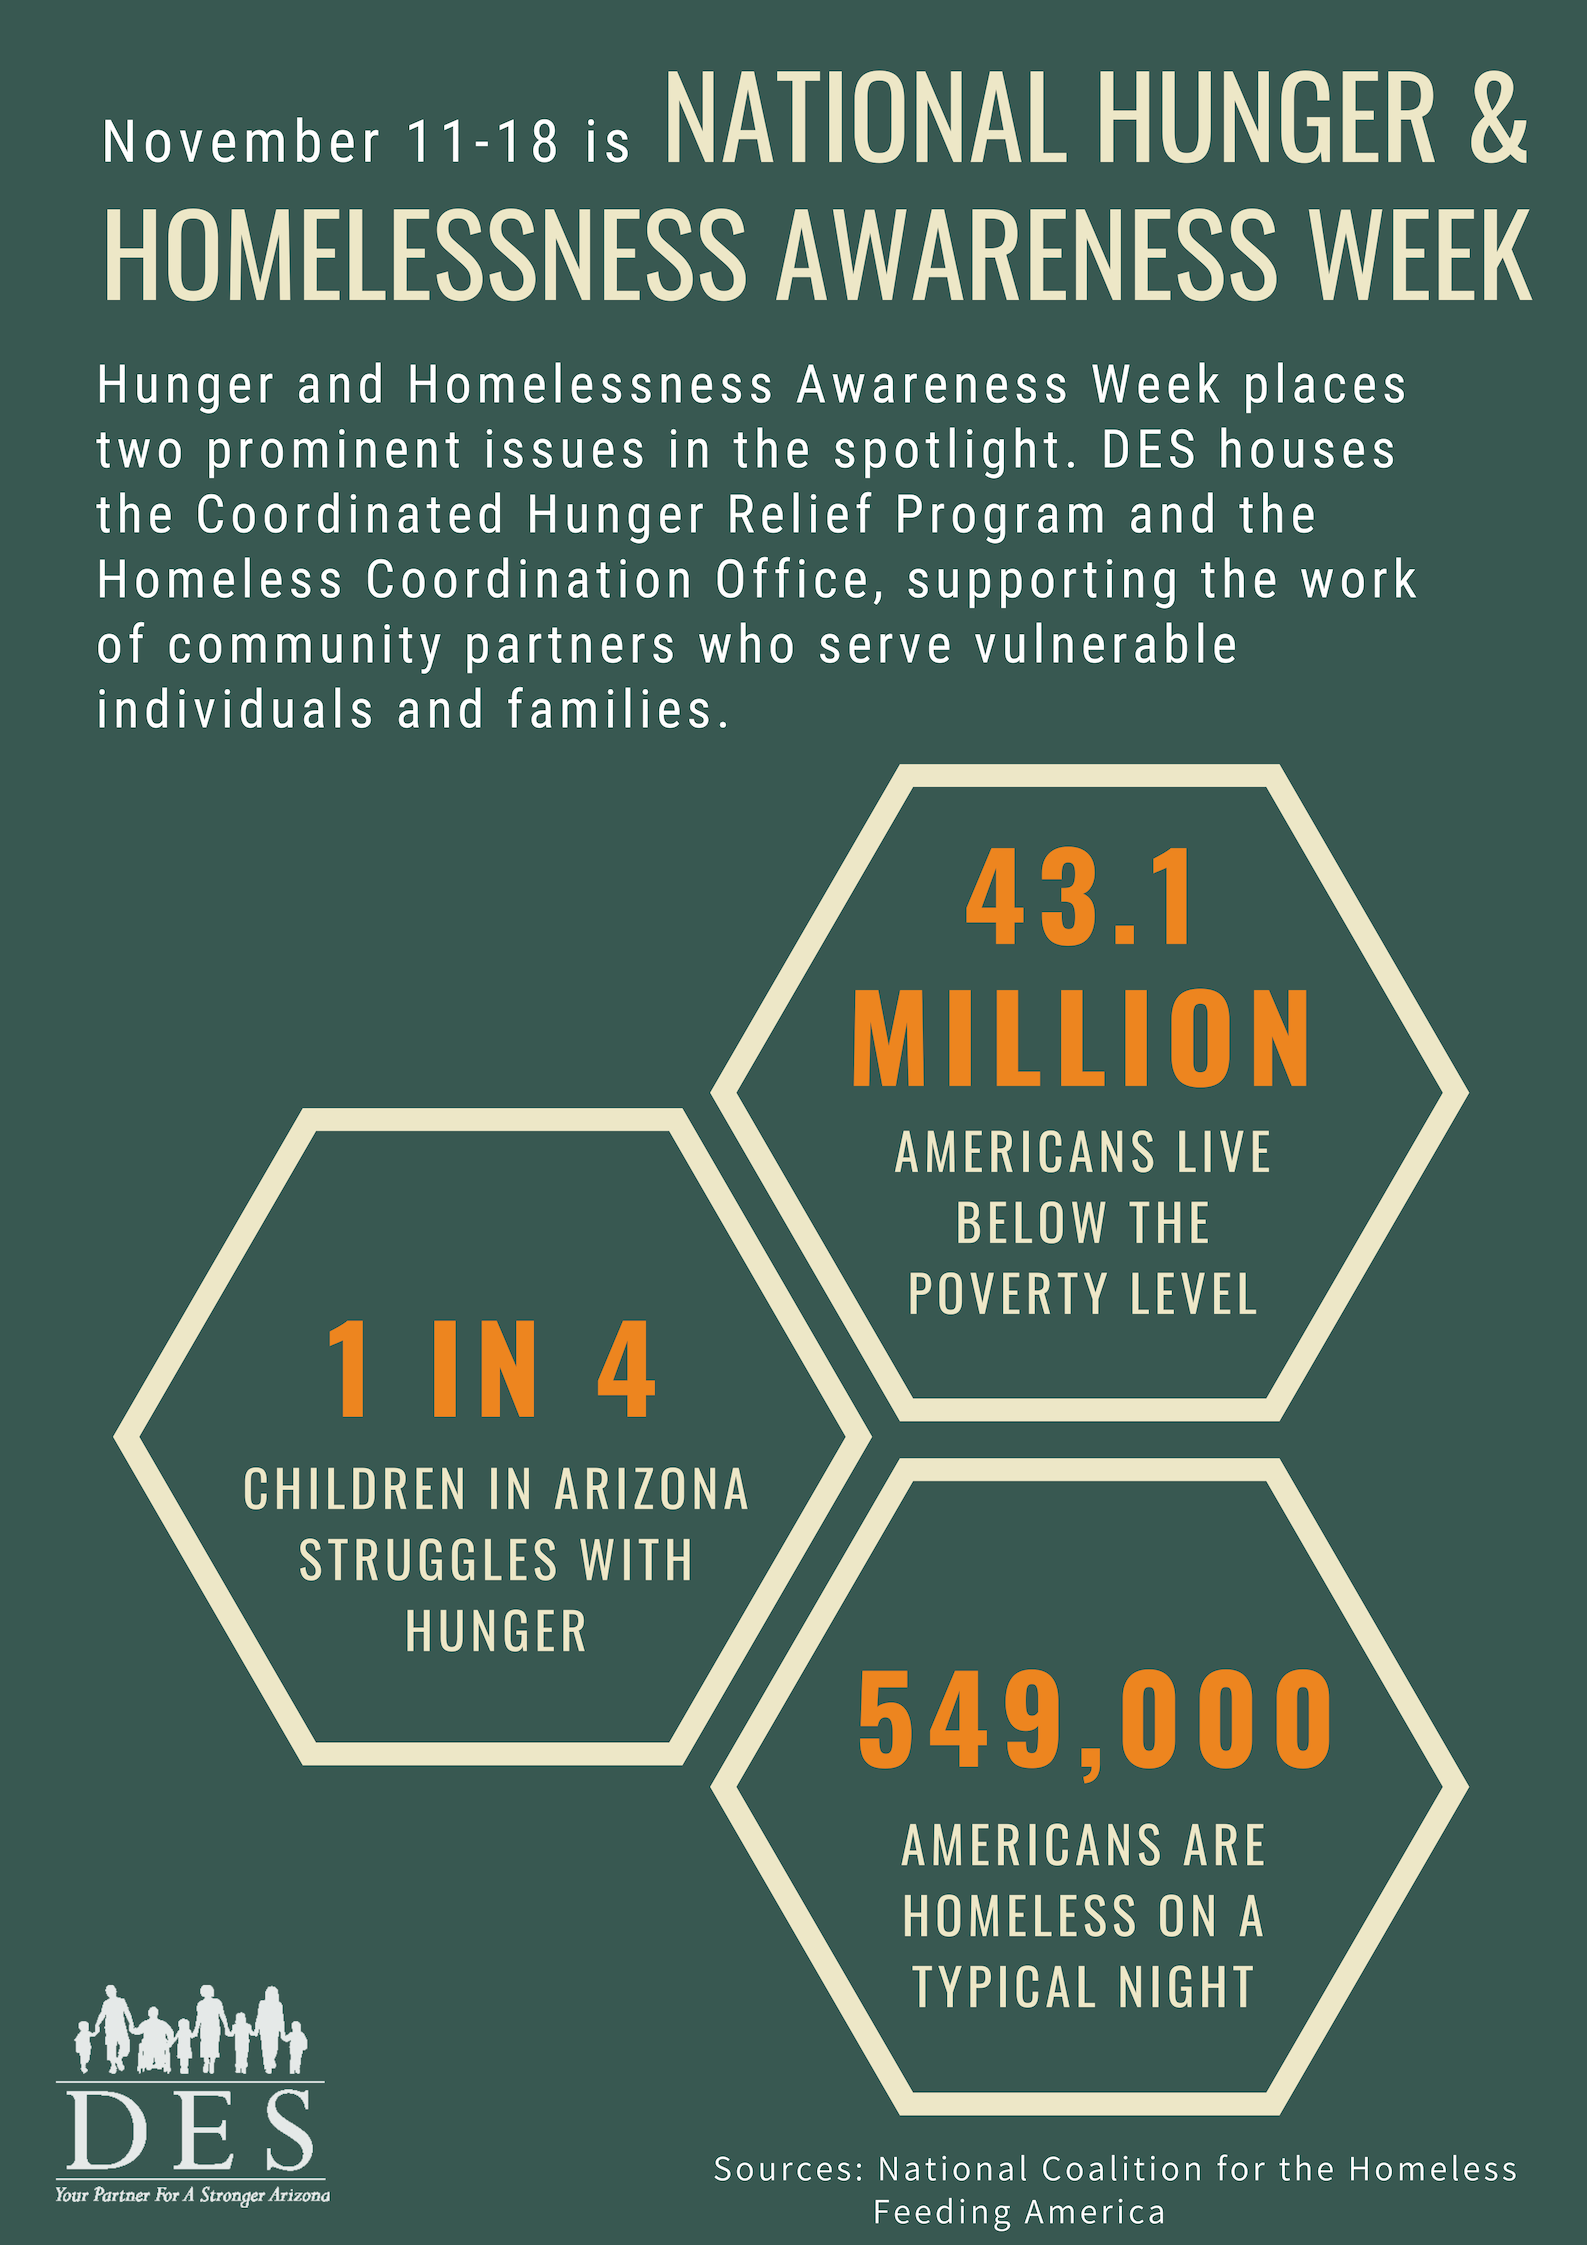 Facts and figures about National Hunger & Homelessness Awareness Week.